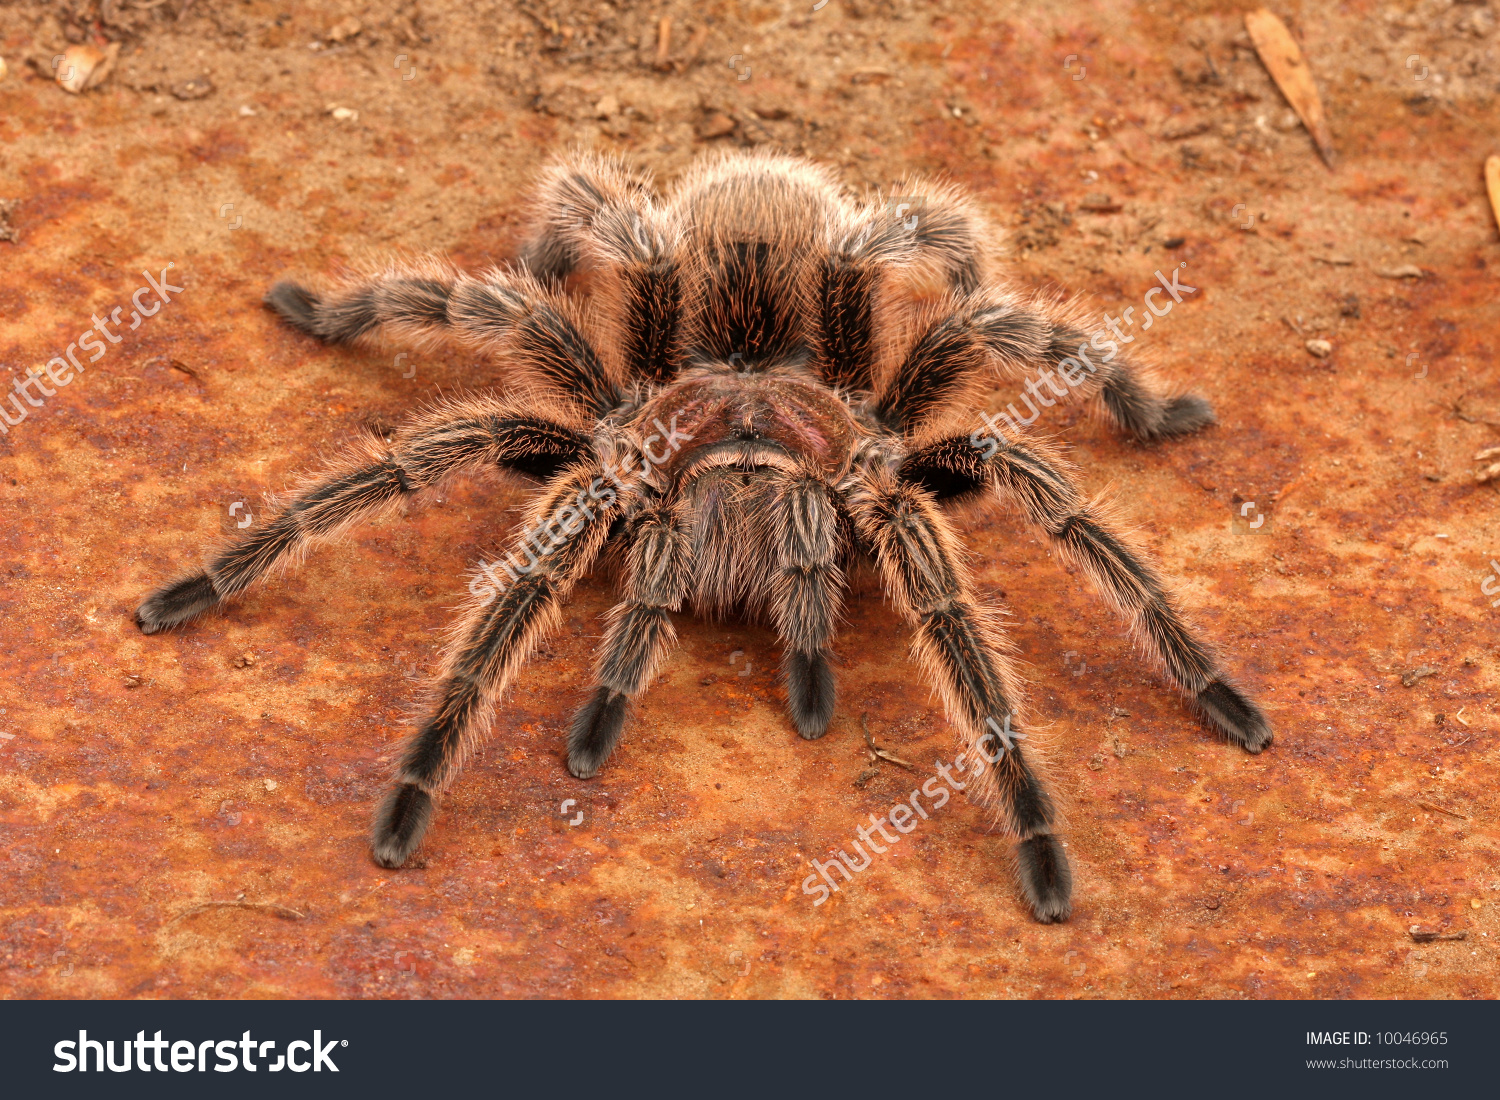 Chilean Rose Tarantula clipart #8, Download drawings